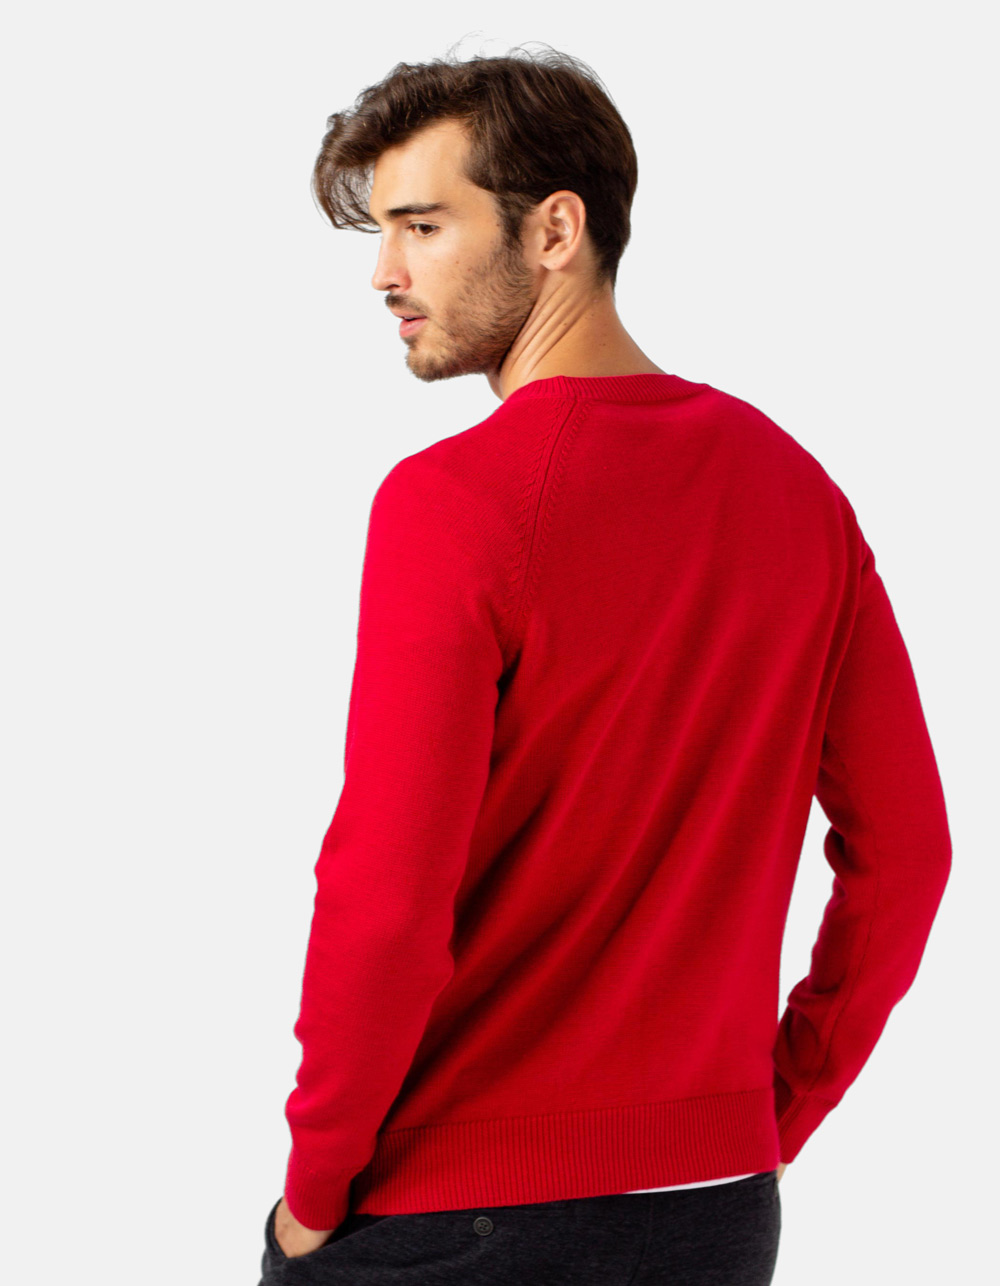 Red crew neck sweater - Backside